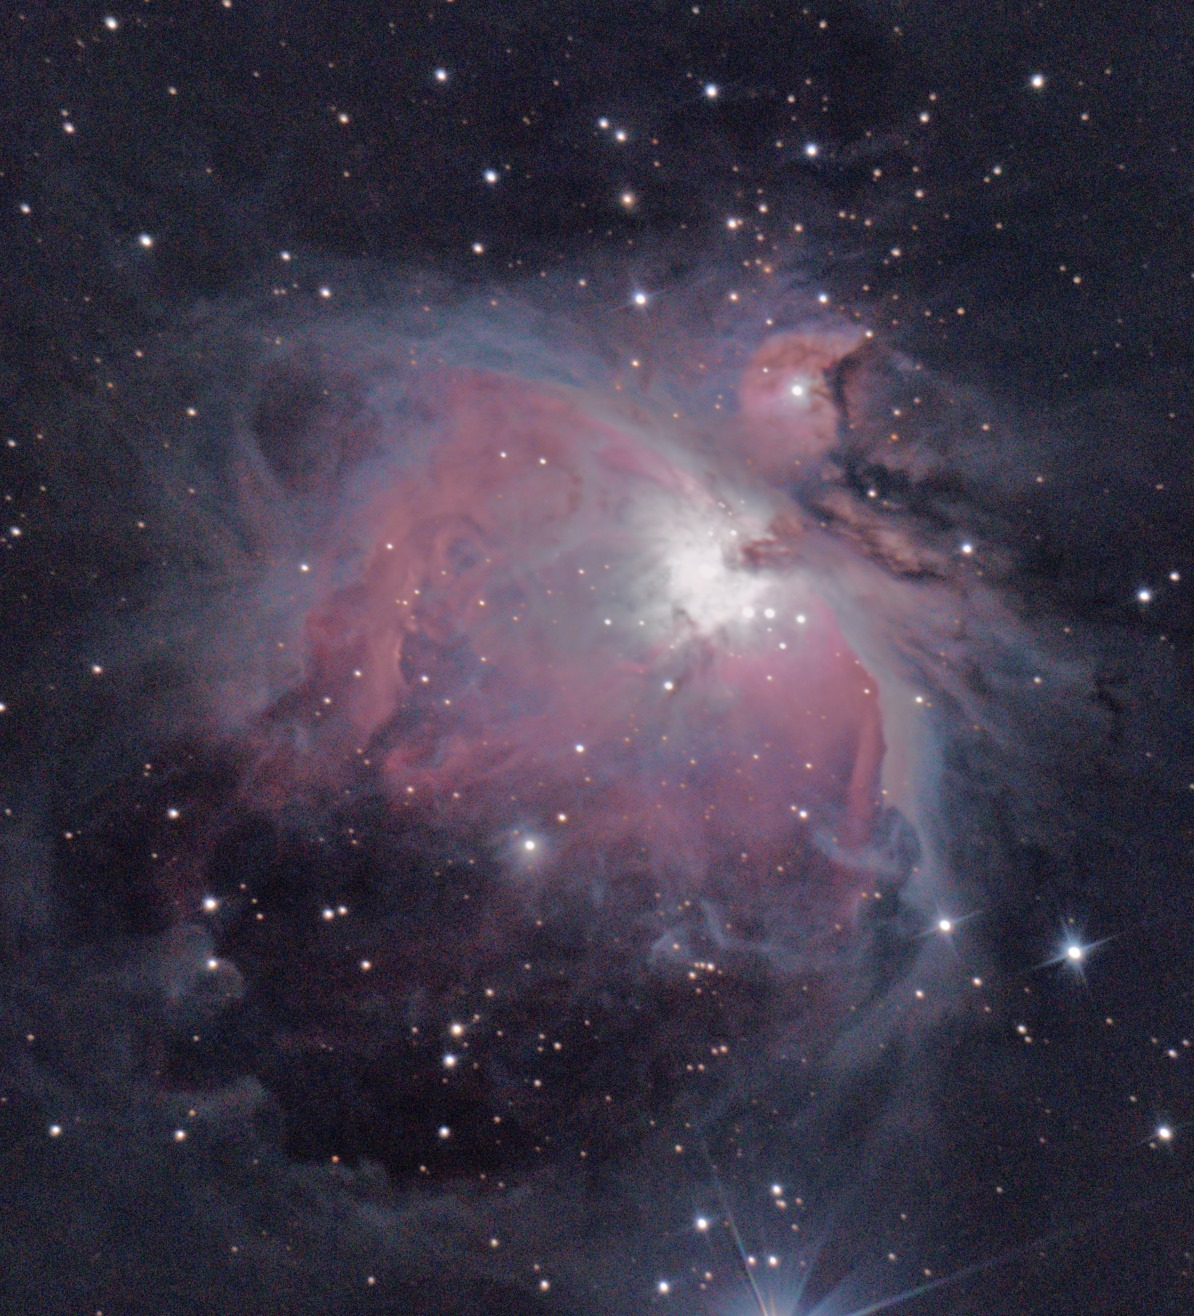 M42, The Orion Nebula